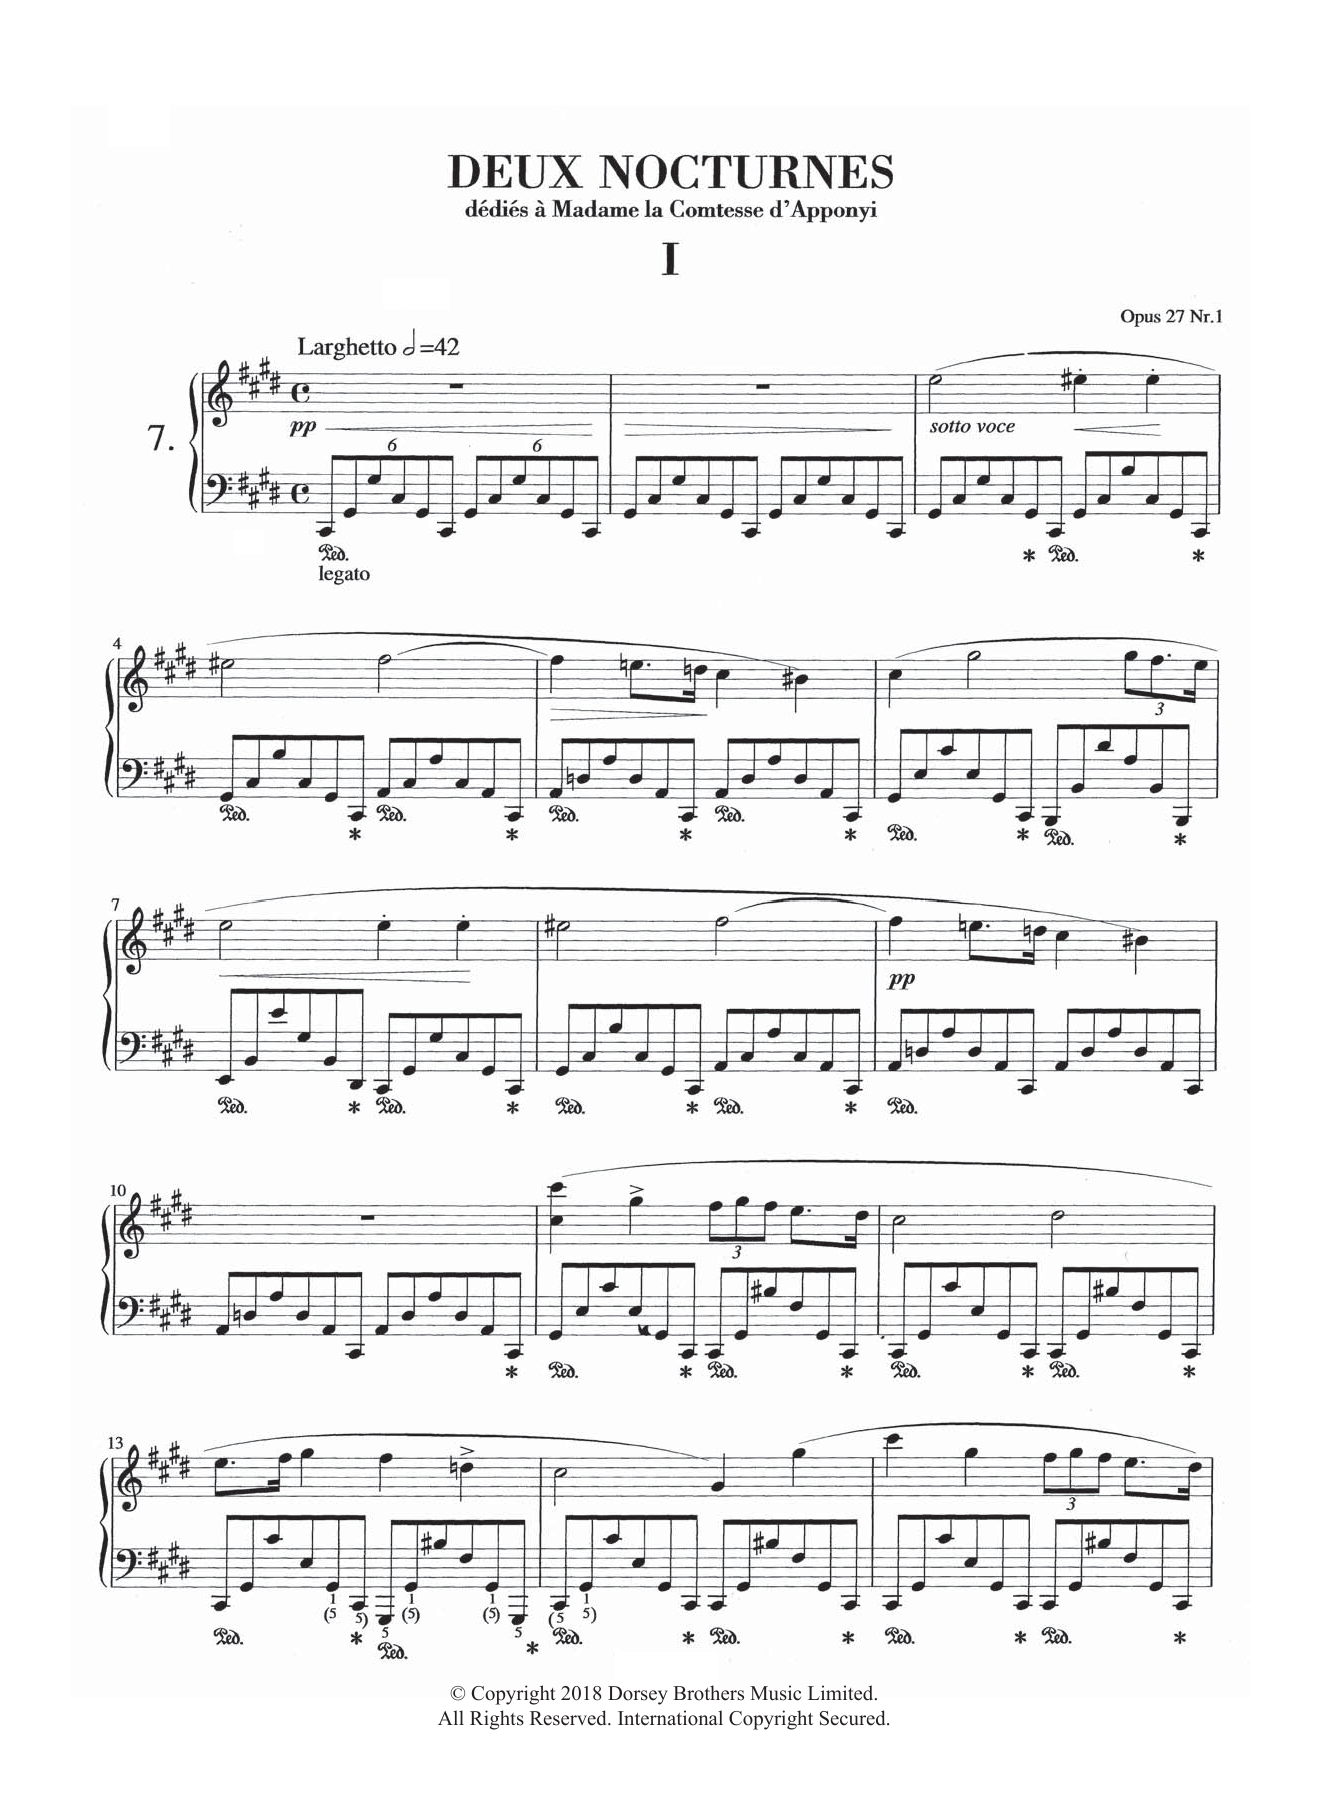 Nocturne in C-Sharp Minor, Op.27, No.1 Sheet Music